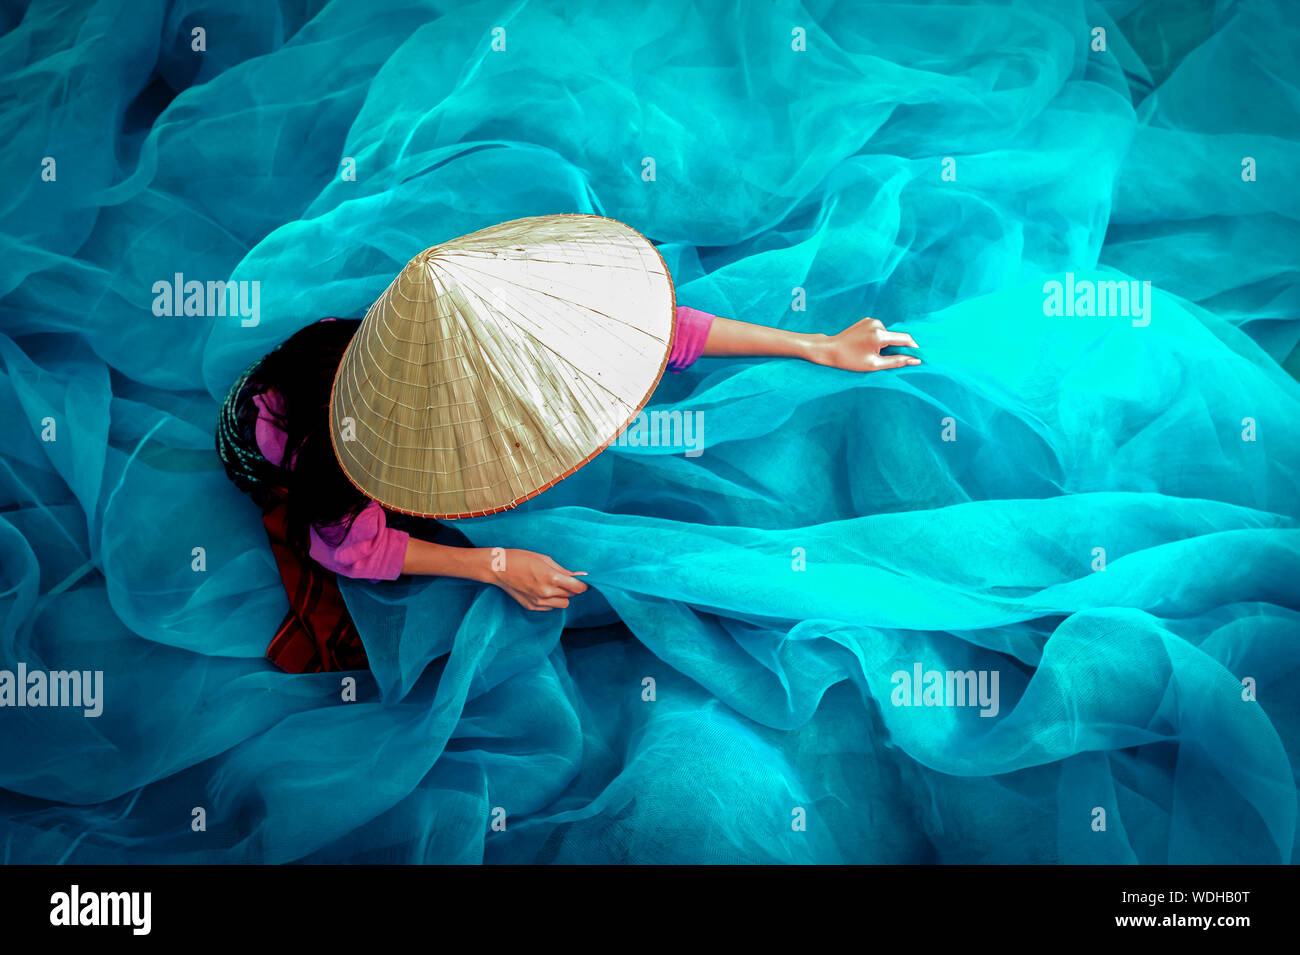 High Angle View Of Woman With Tulle Netting Stock Photo